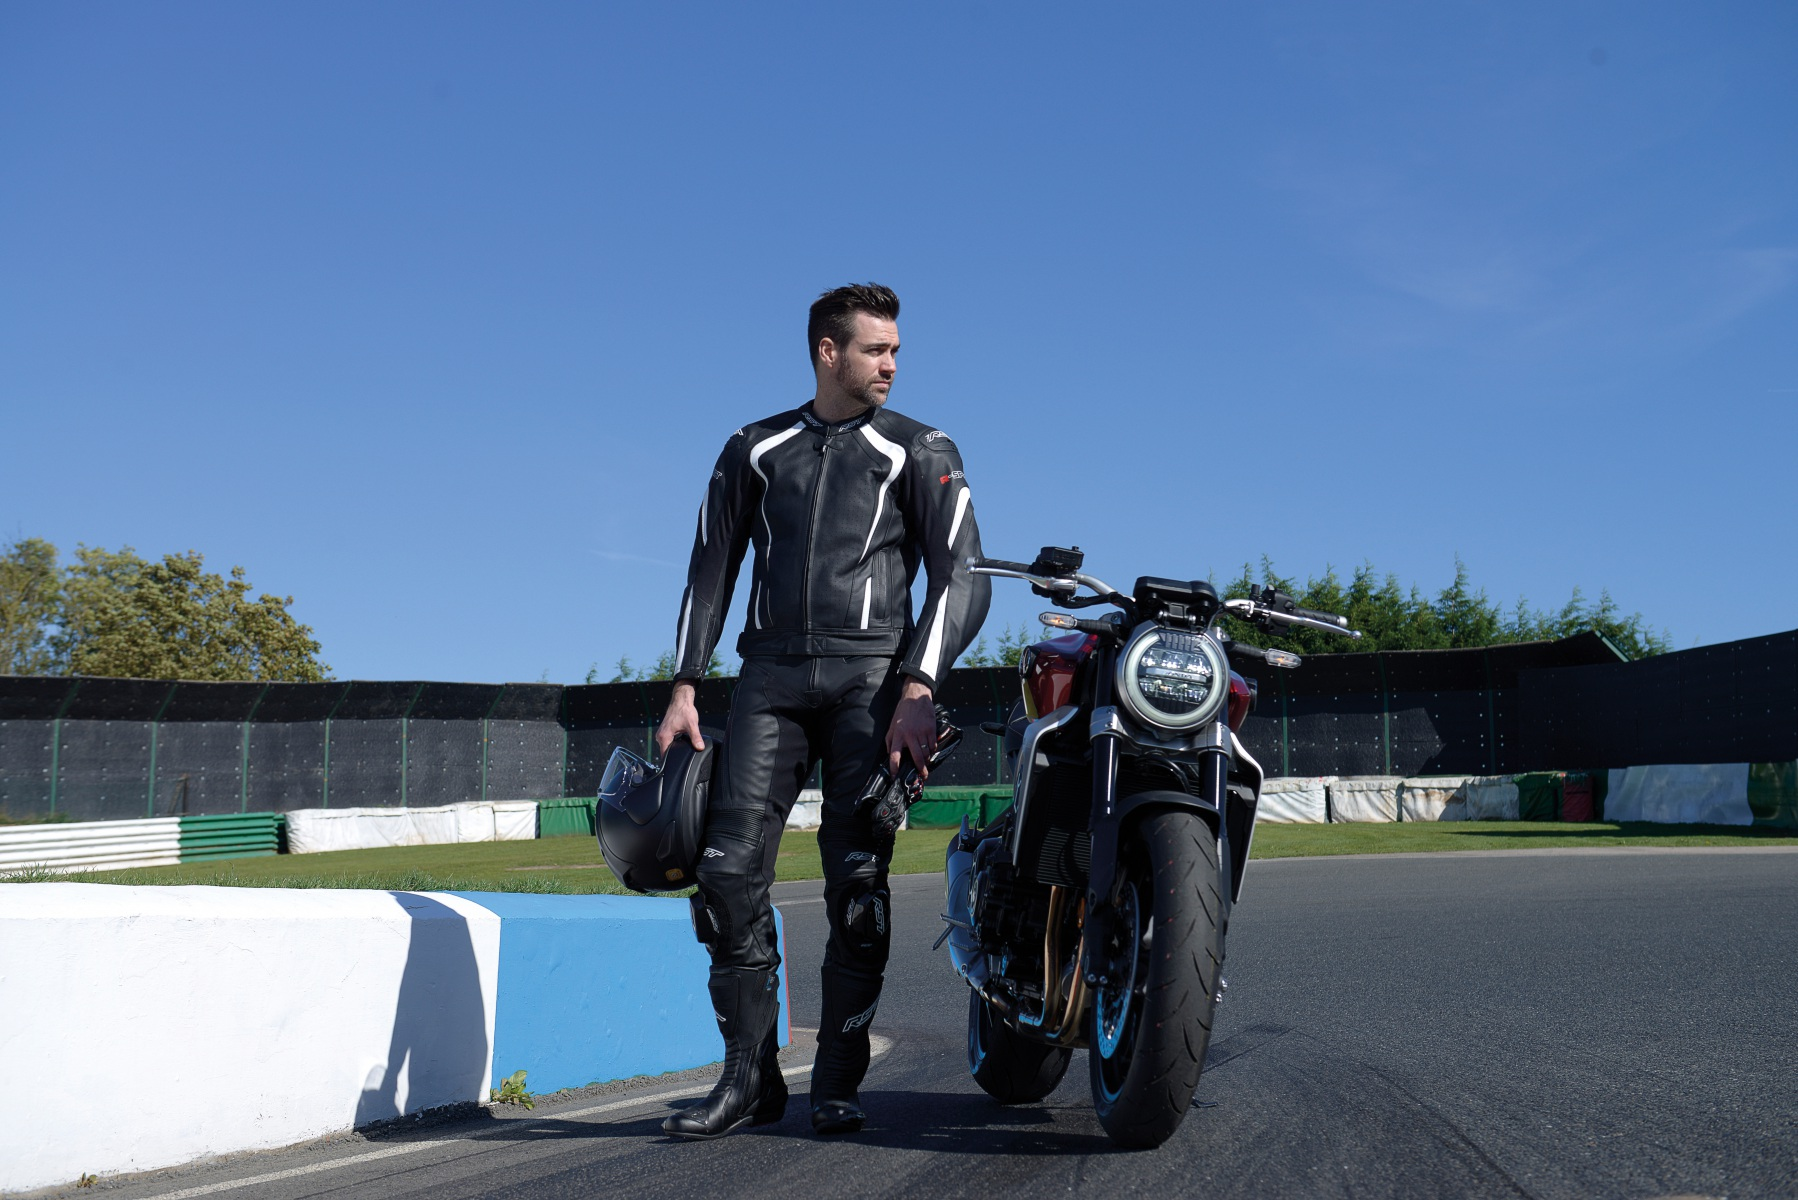 102255-rst-r-sport-leather-jacket-lifestyle-01